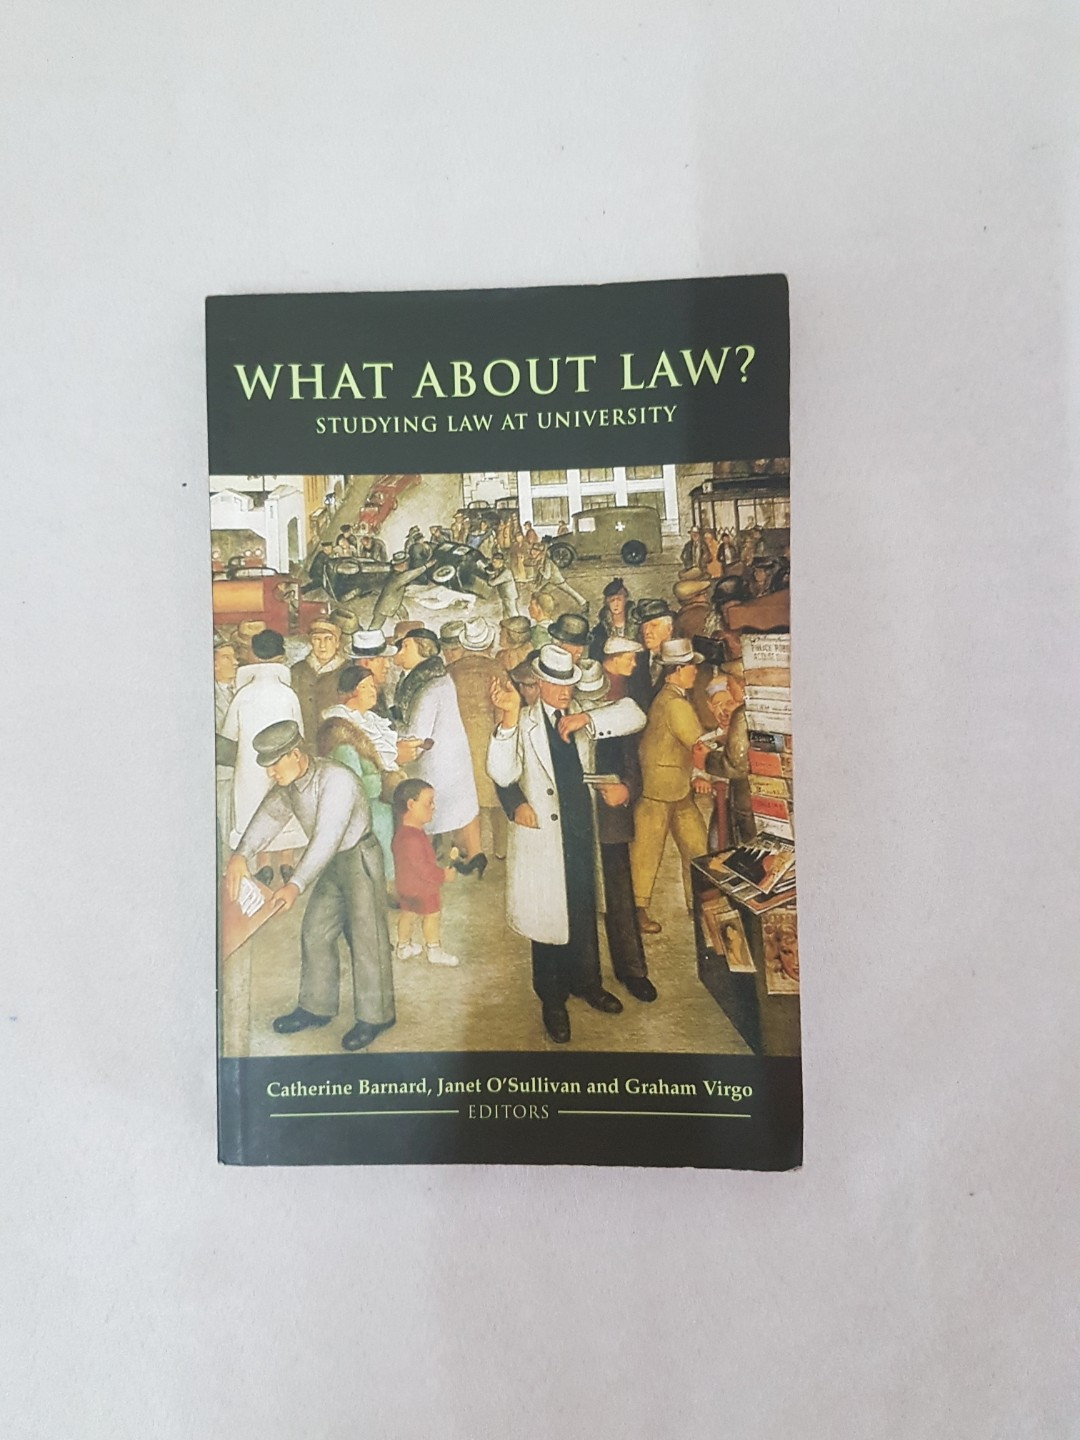 What About Law - Studying Law at University